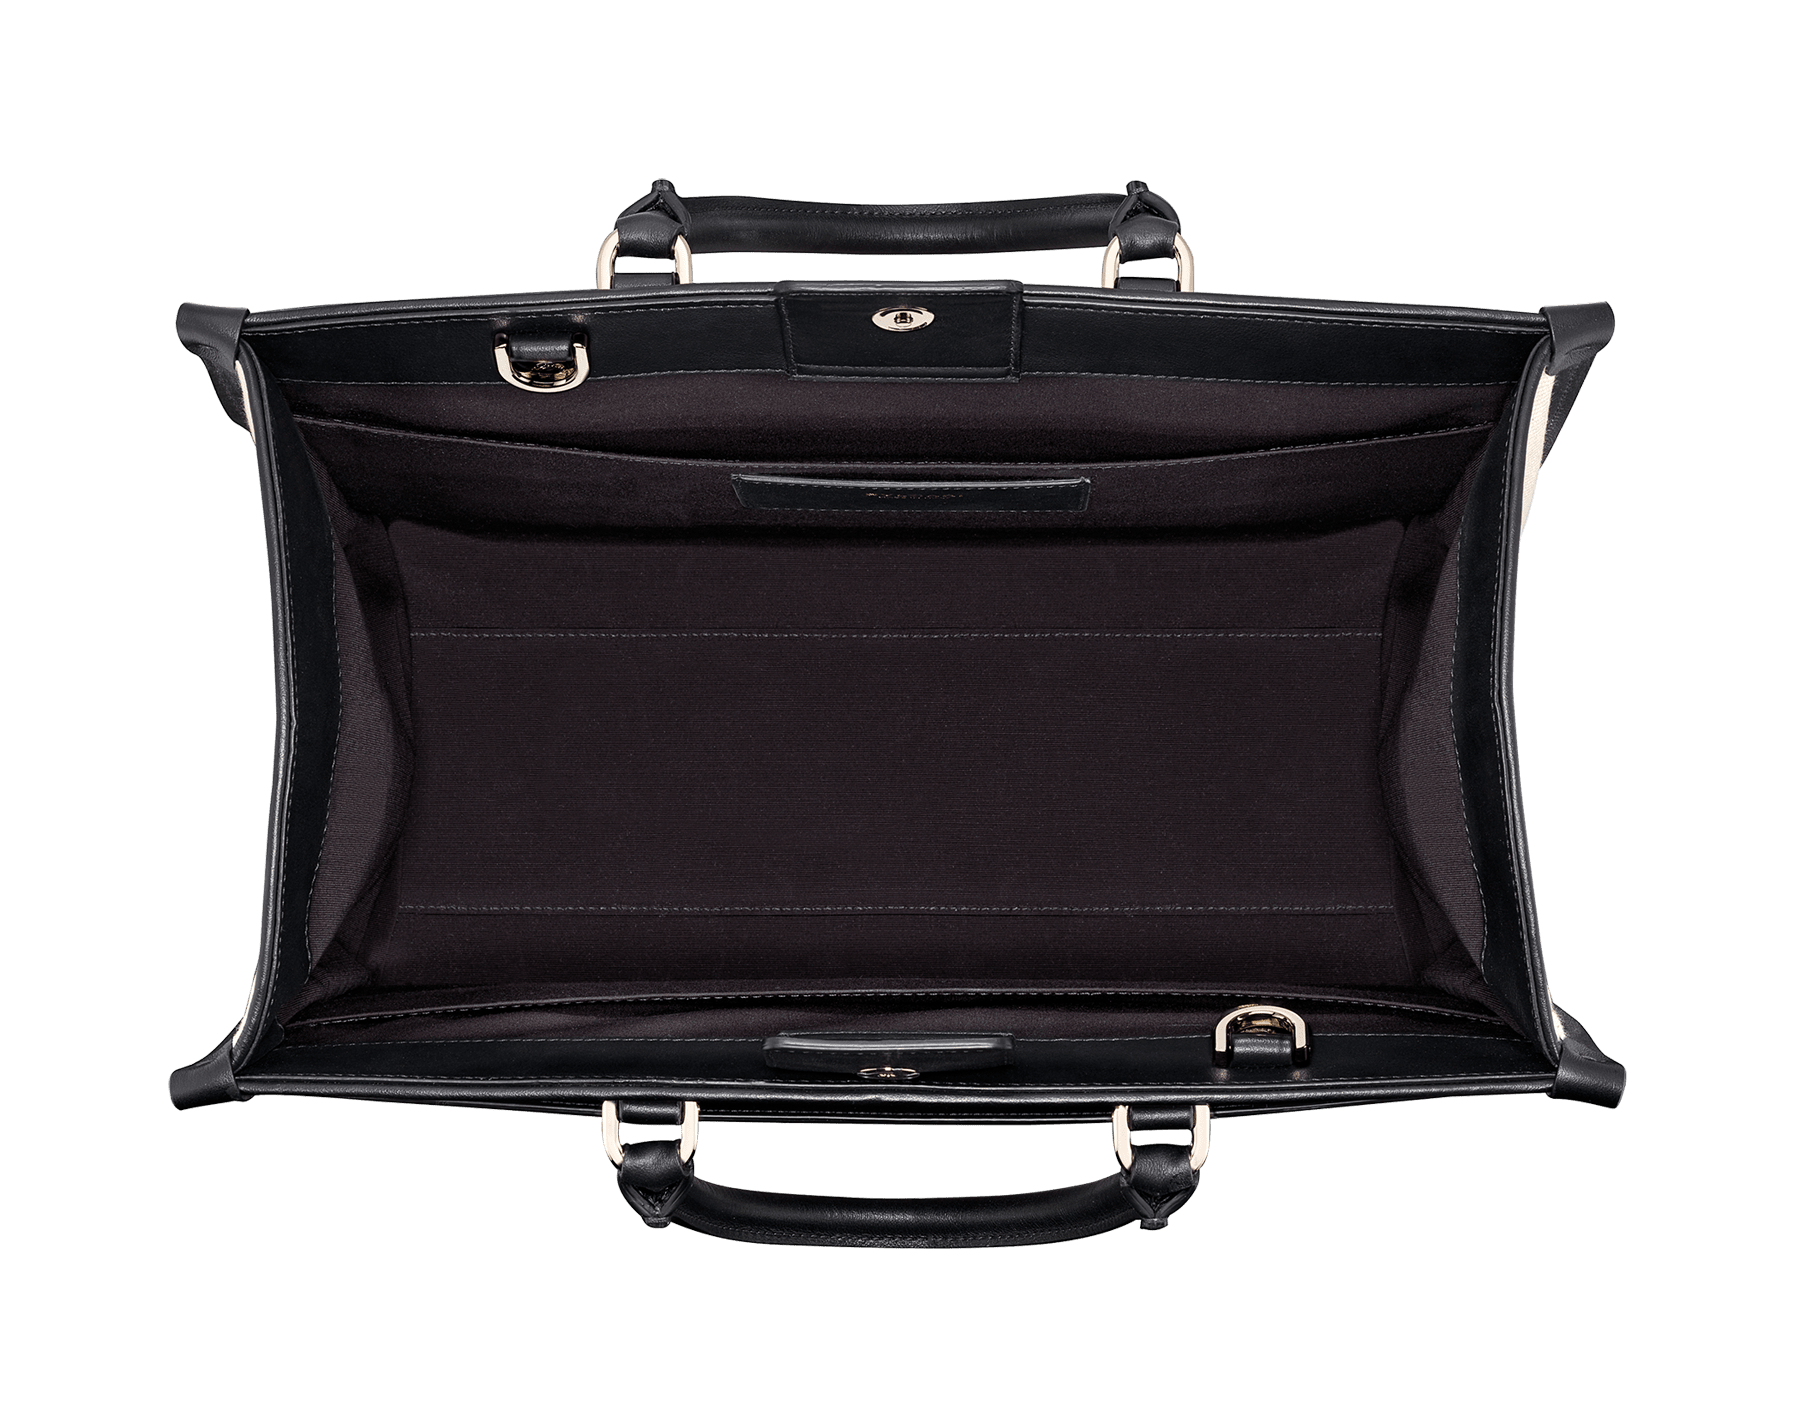 """""""Bvlgari Logo"""" large tote bag in black calf leather, with black grosgrain inner lining. Bvlgari logo featured with dark ruthenium-plated brass chain inserts on the black calf leather. BVL-1160 image 5"""